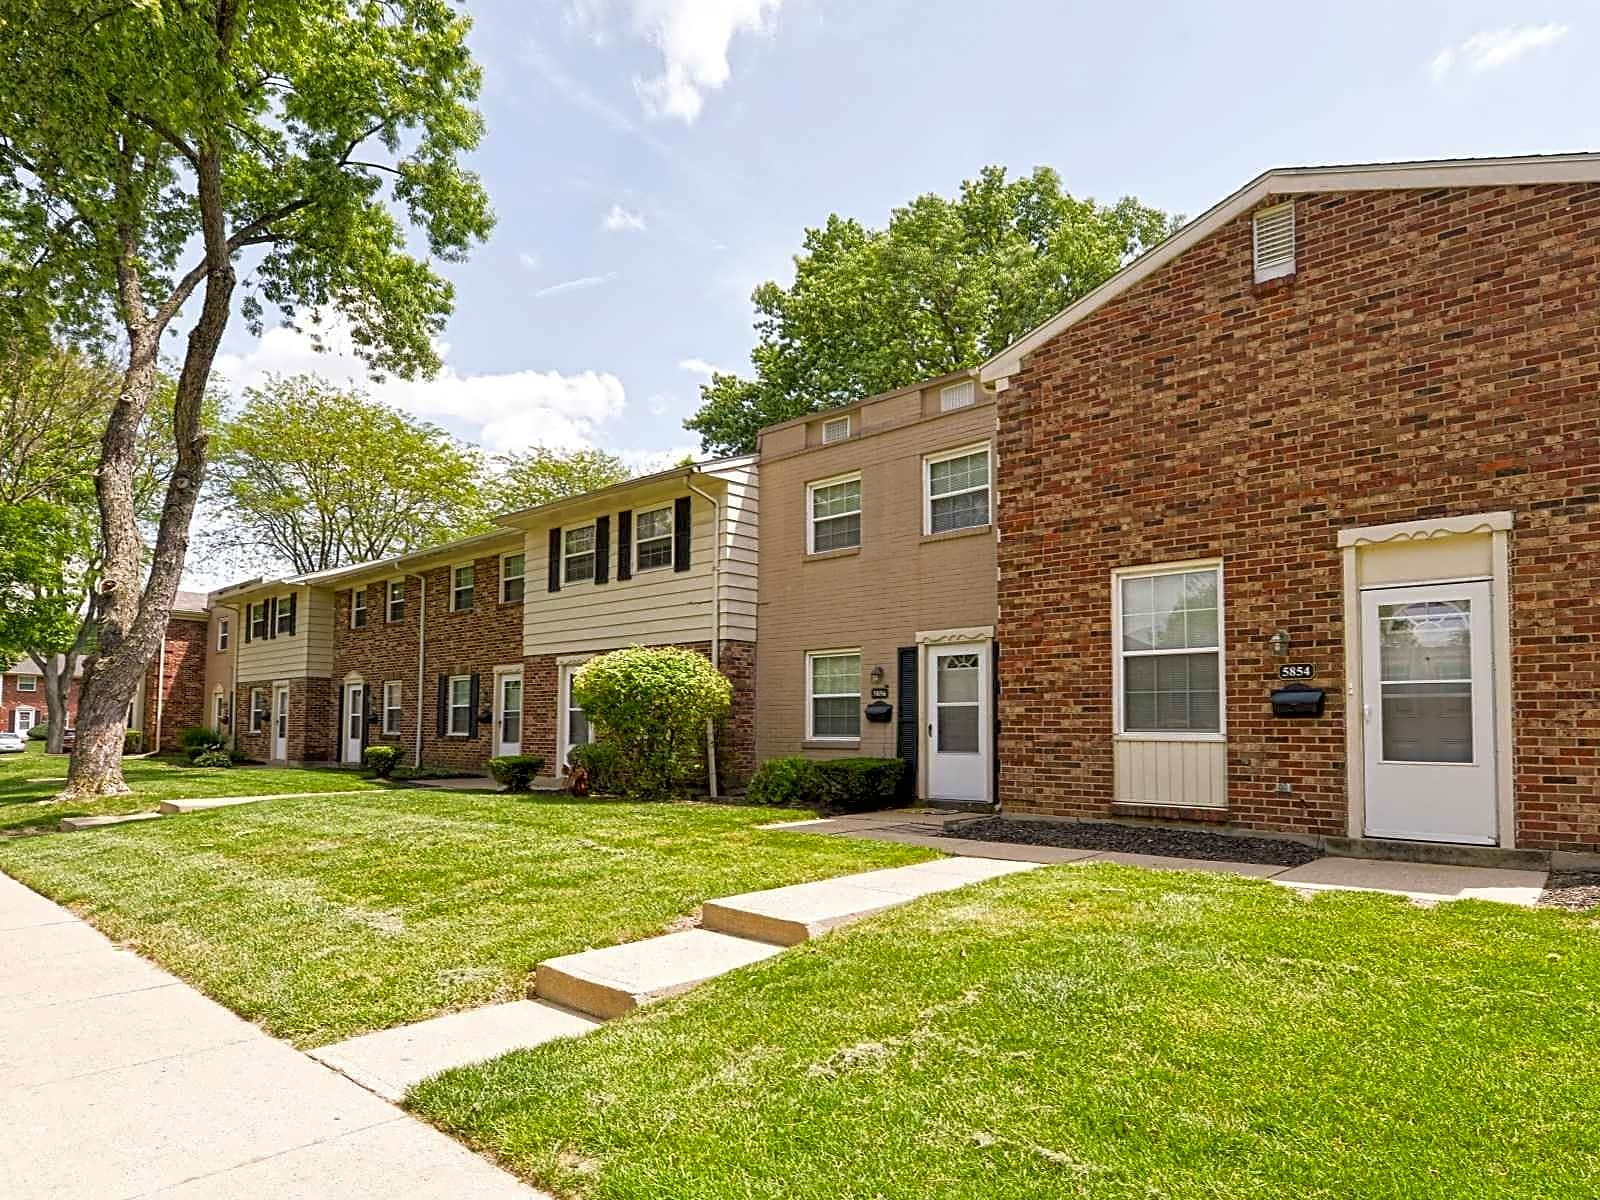 Windsor Terrace Apartments - Huber Heights, OH 45424